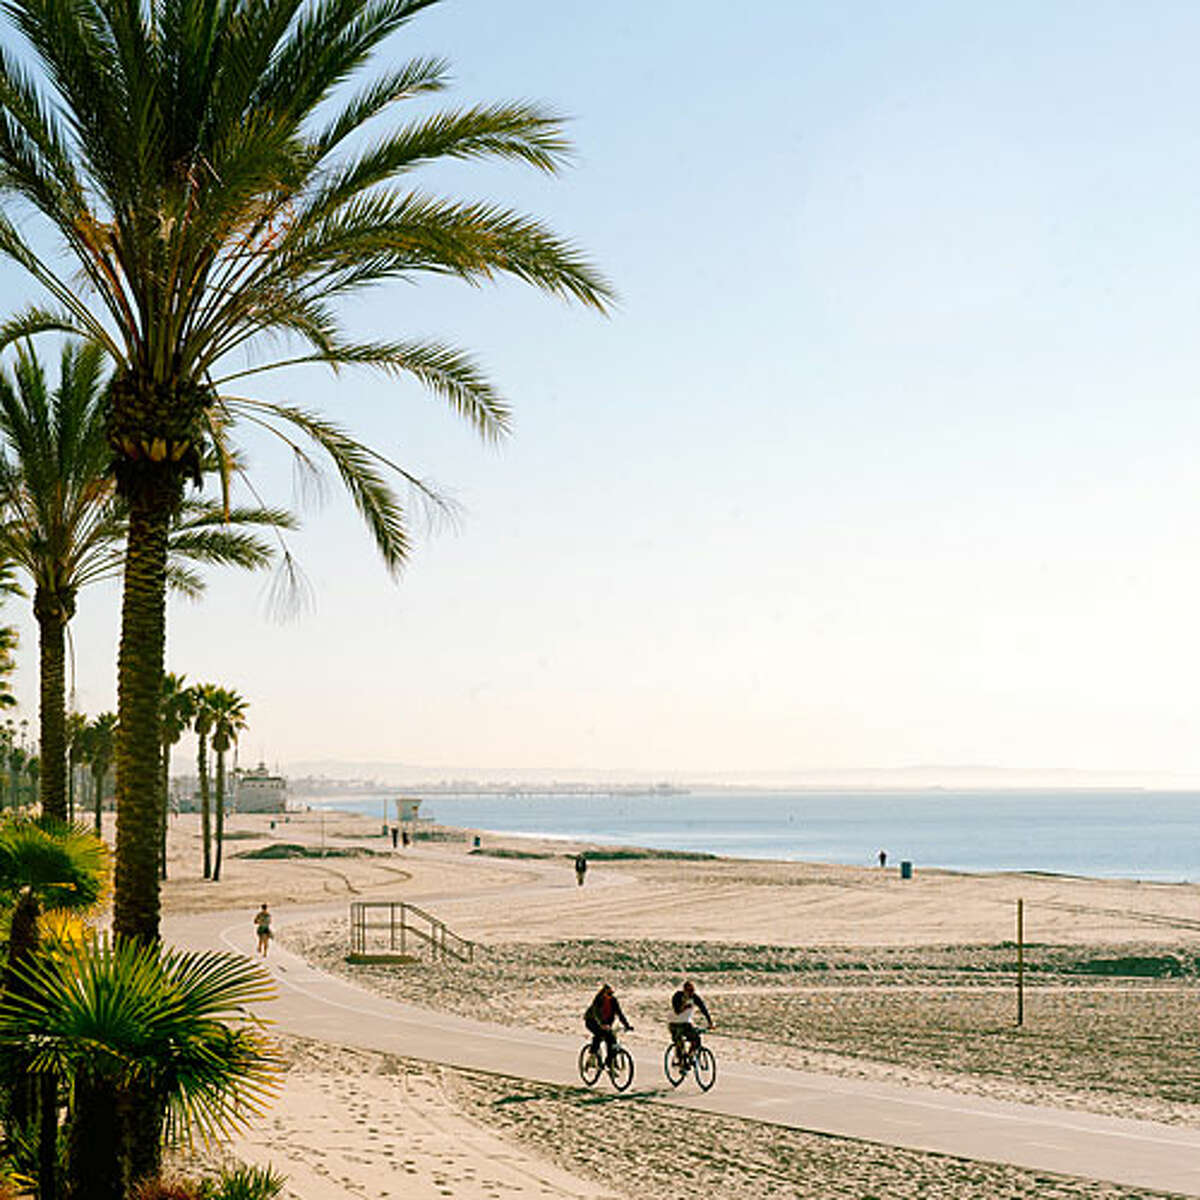 9. Santa Monica, CA This tourist must-see has 2.43 ice cream parlors per capita. A fan favorite is Beachy Cream, which makes all of their organic ice cream on-site. Their fun flavors include